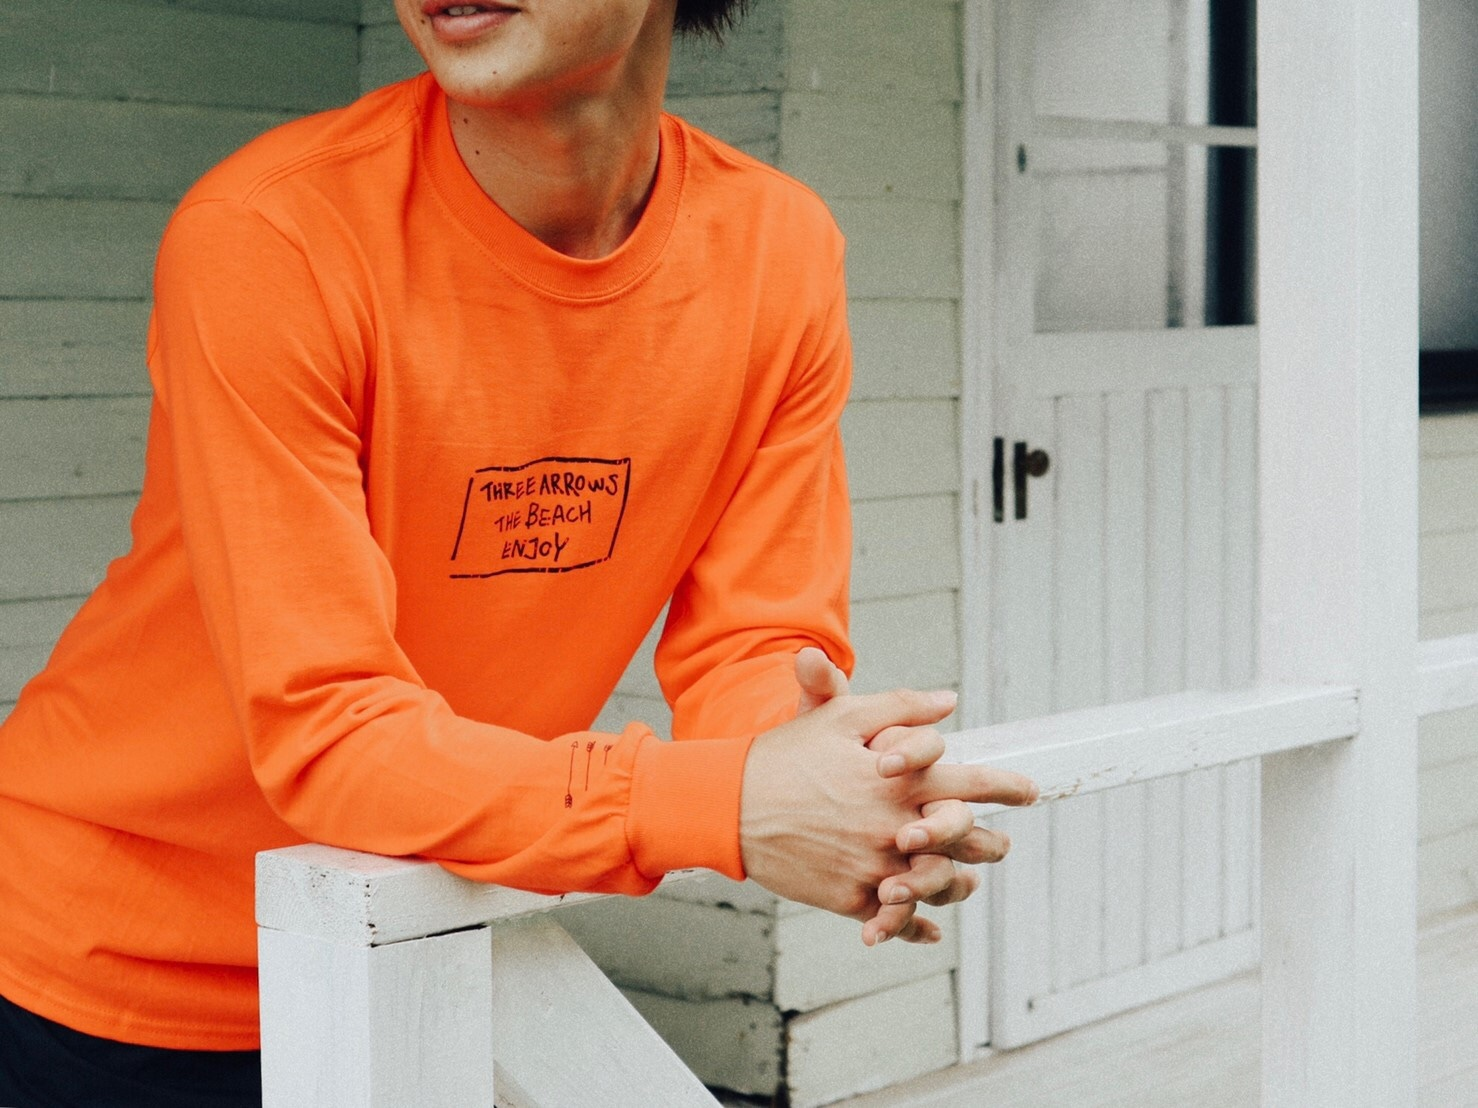 【11/2 21:00 再入荷】THREEARROWS BOX LOGO L/S TEE(orange)